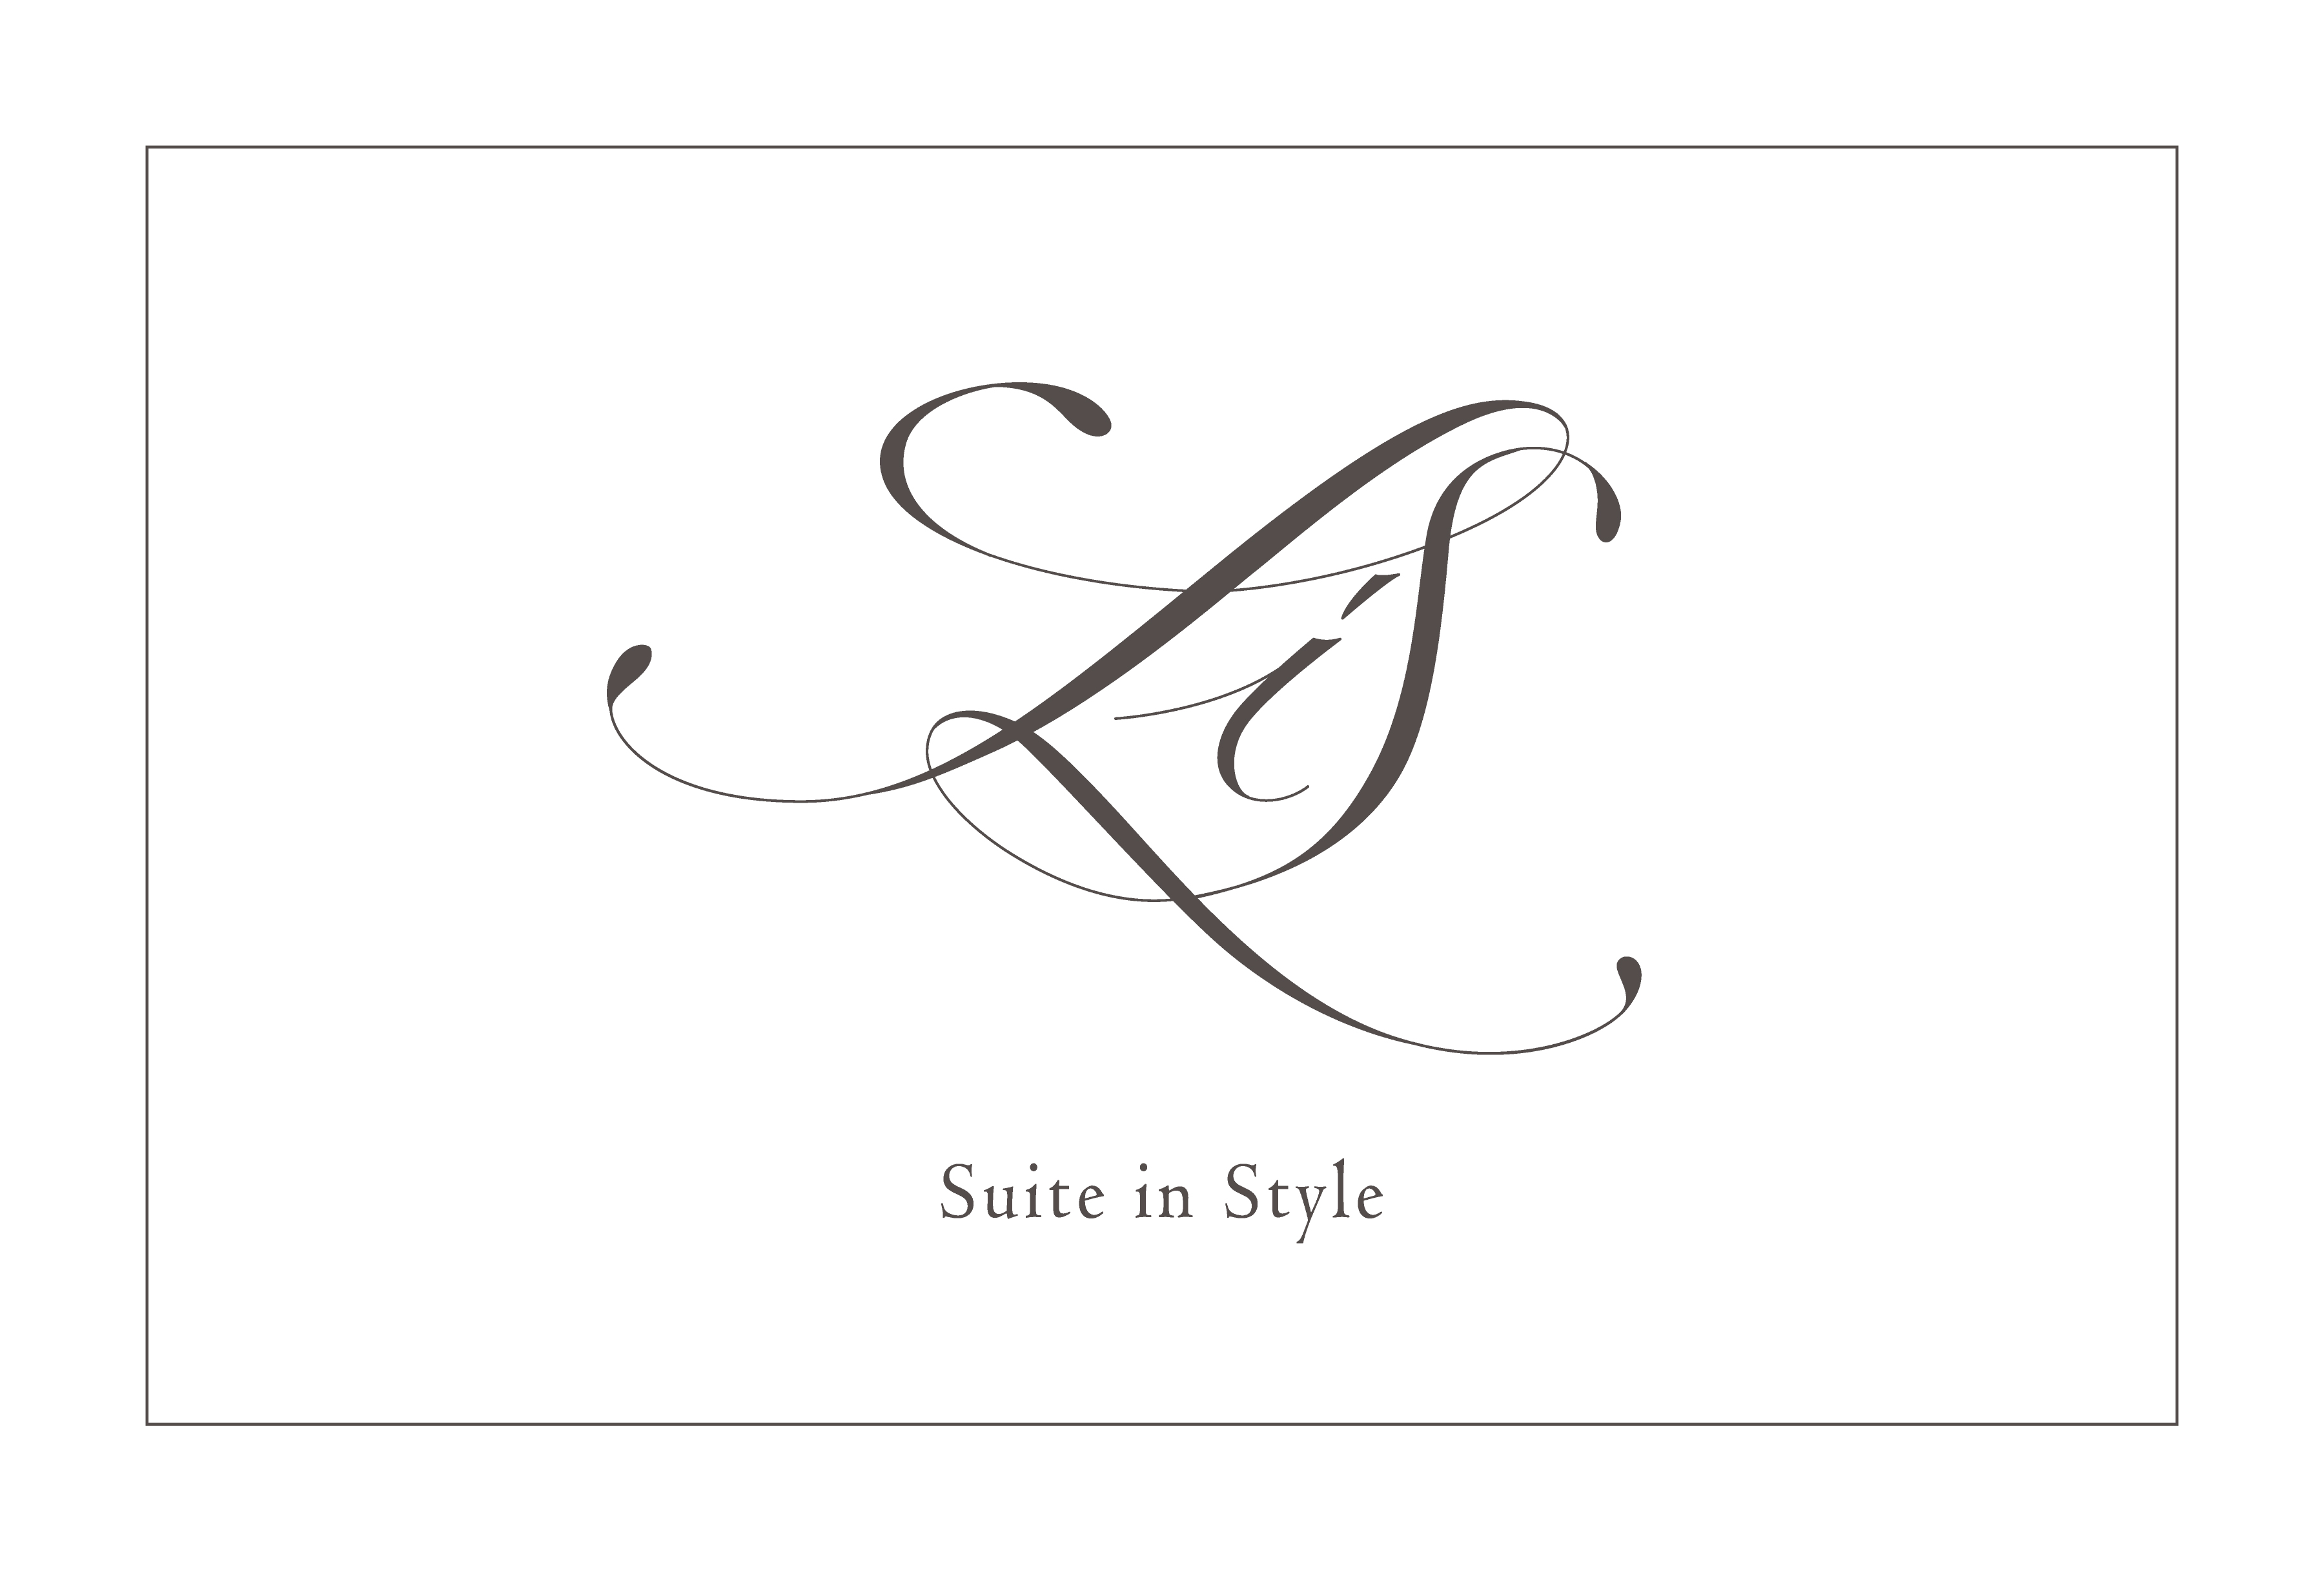 suite in style